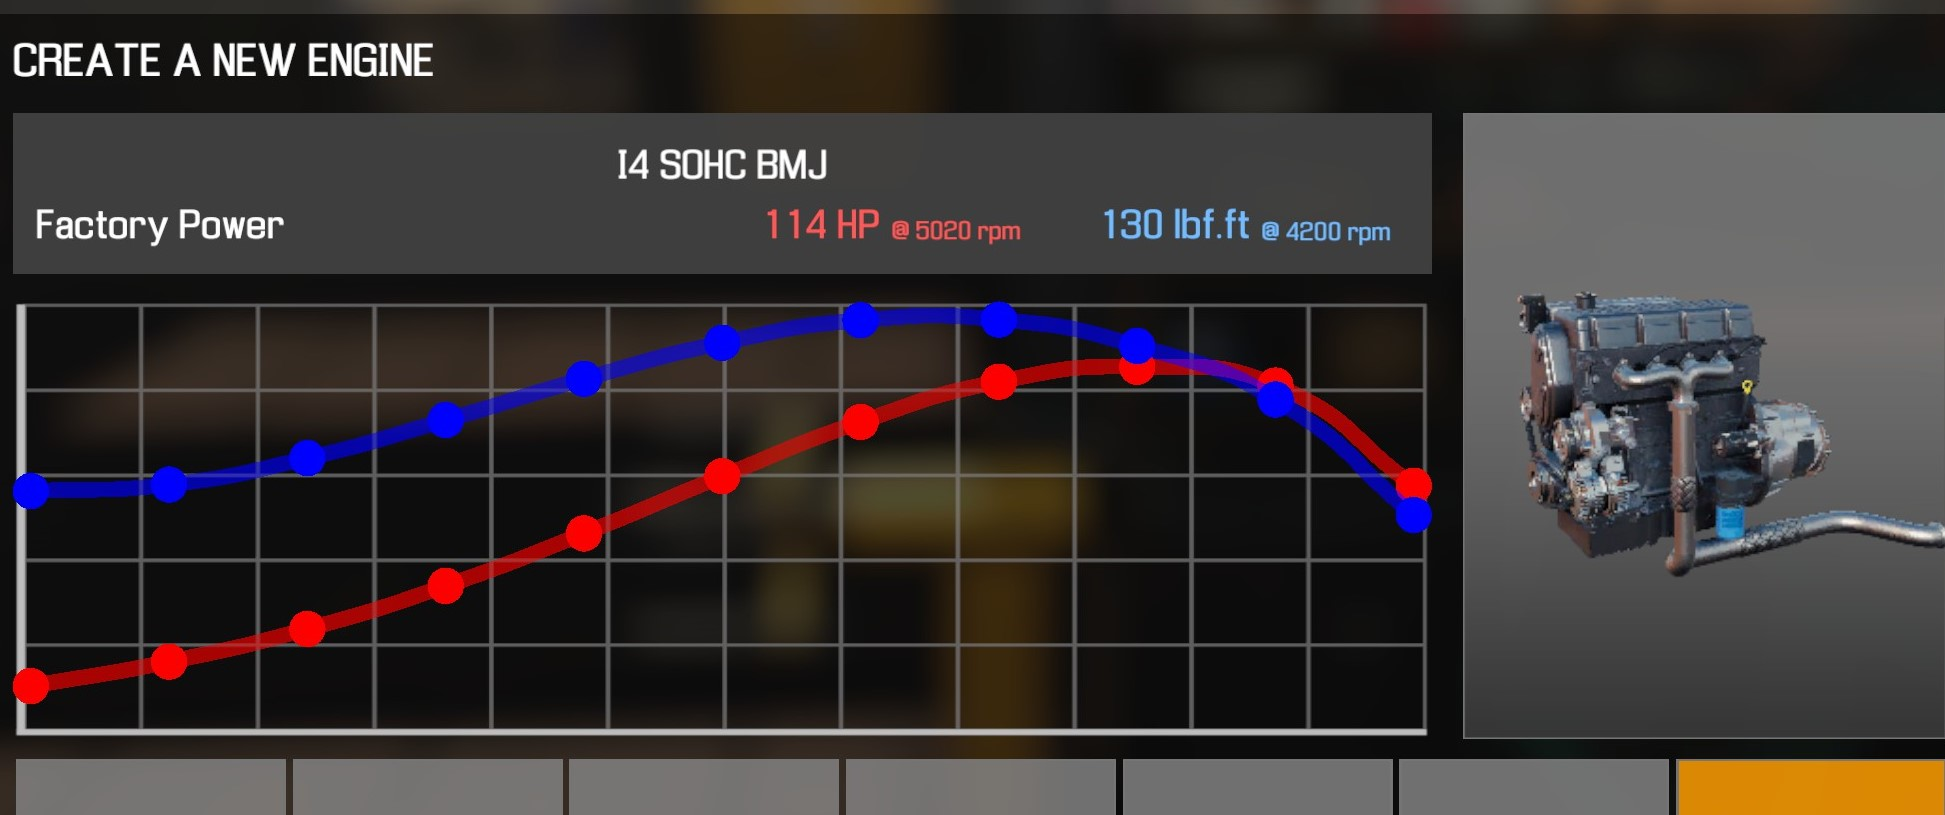 Car Mechanic Simulator 2021 - How to Buy Engine Parts and All Engines in Game Information - I4 SOHC BMJ - F334027